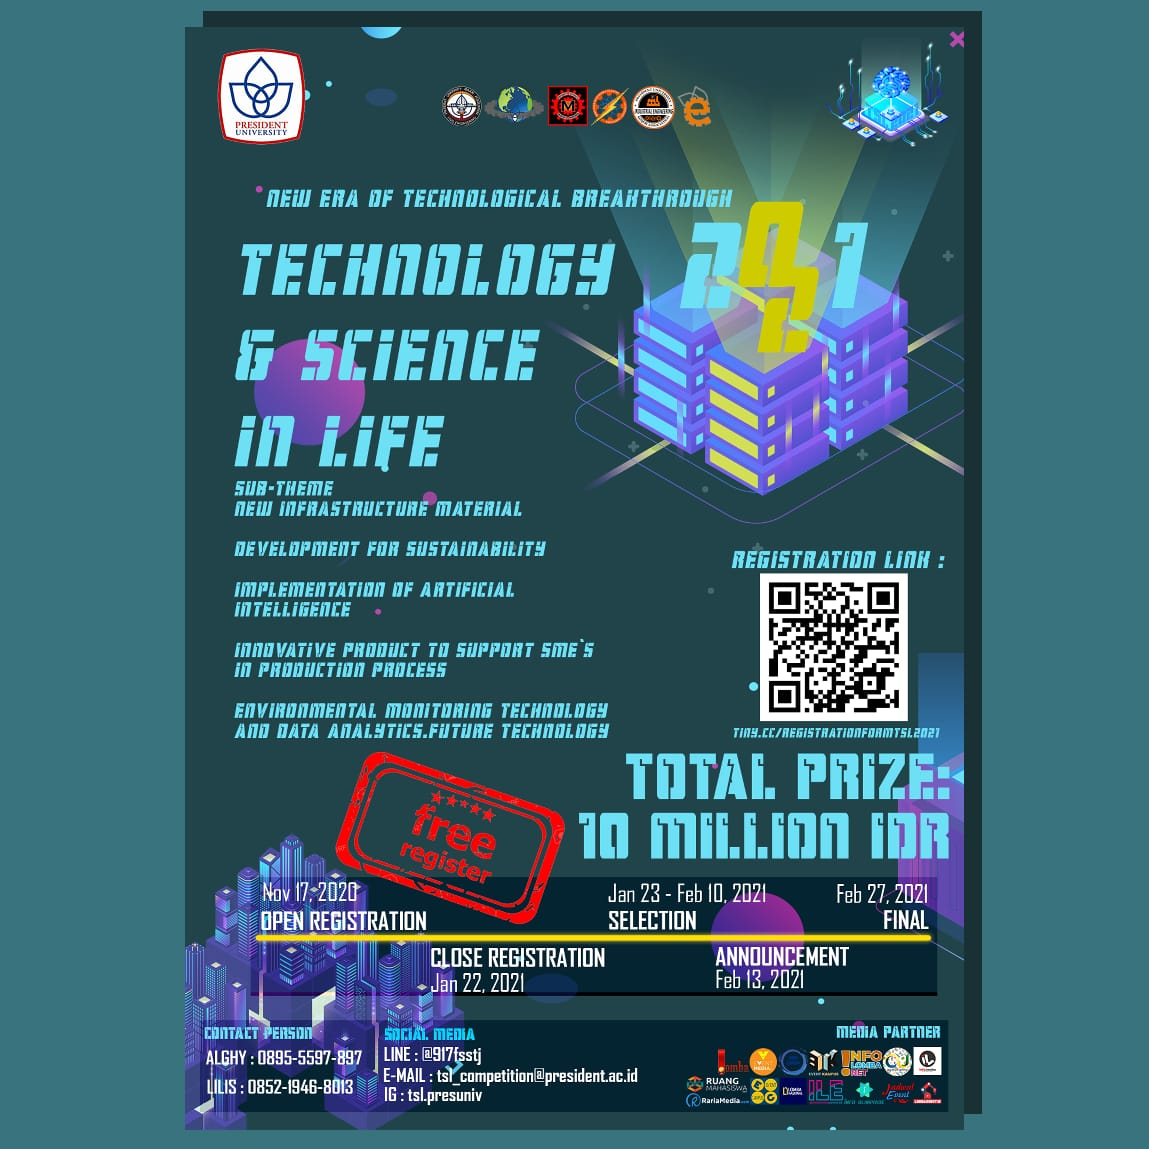 Technology and Science in Life 2021